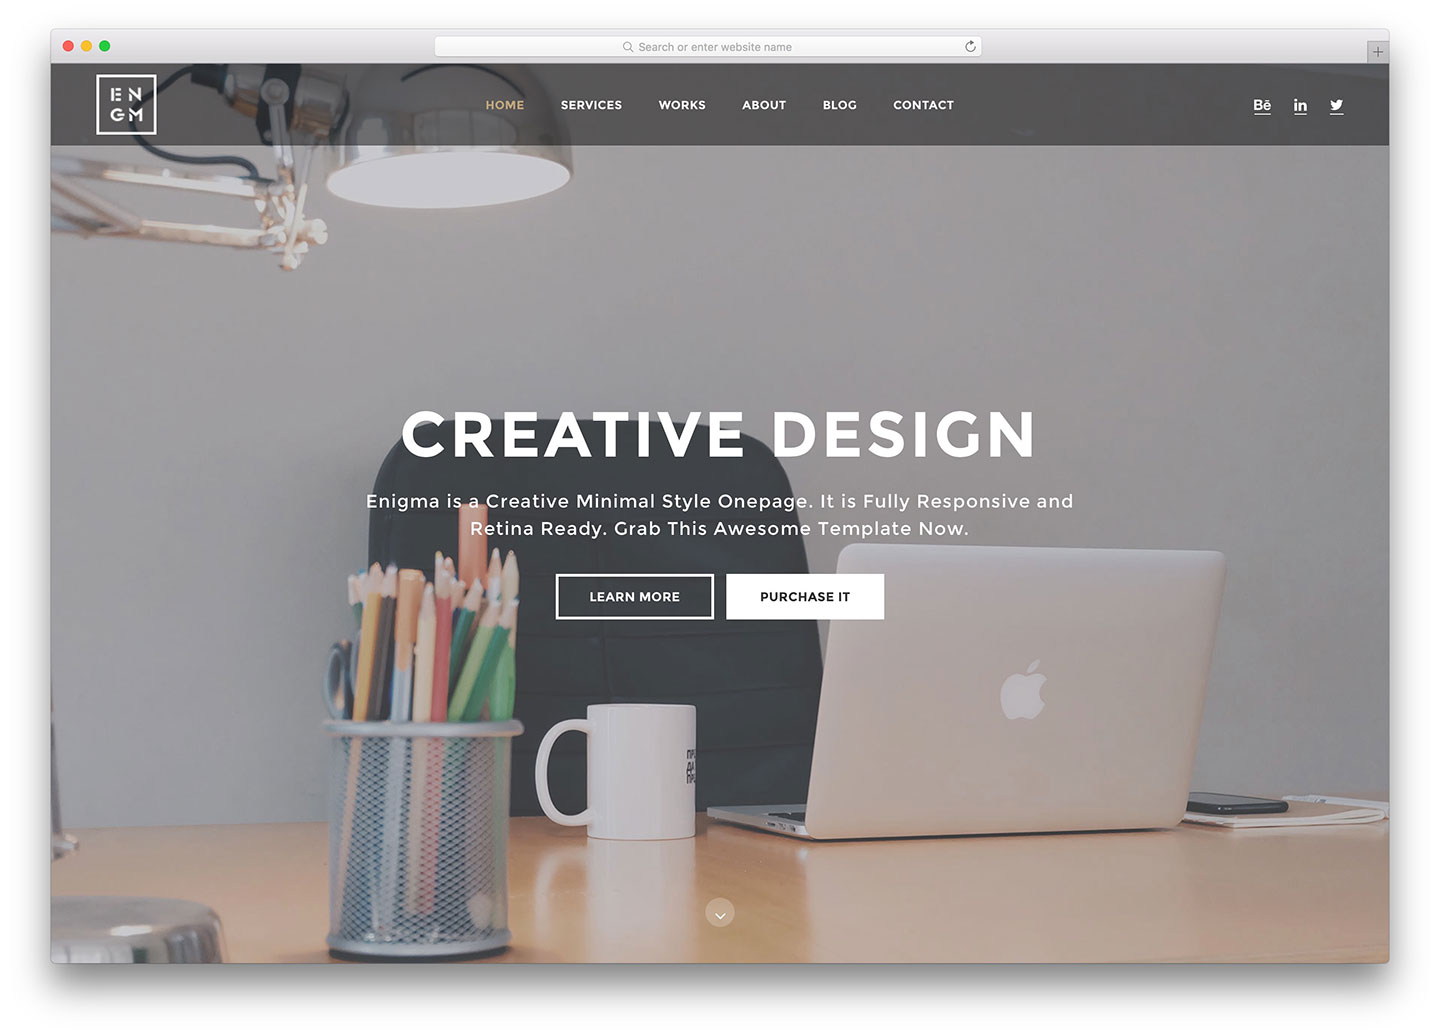 29 Simple Website Templates (HTML & WordPress) 2019 - Colorlib